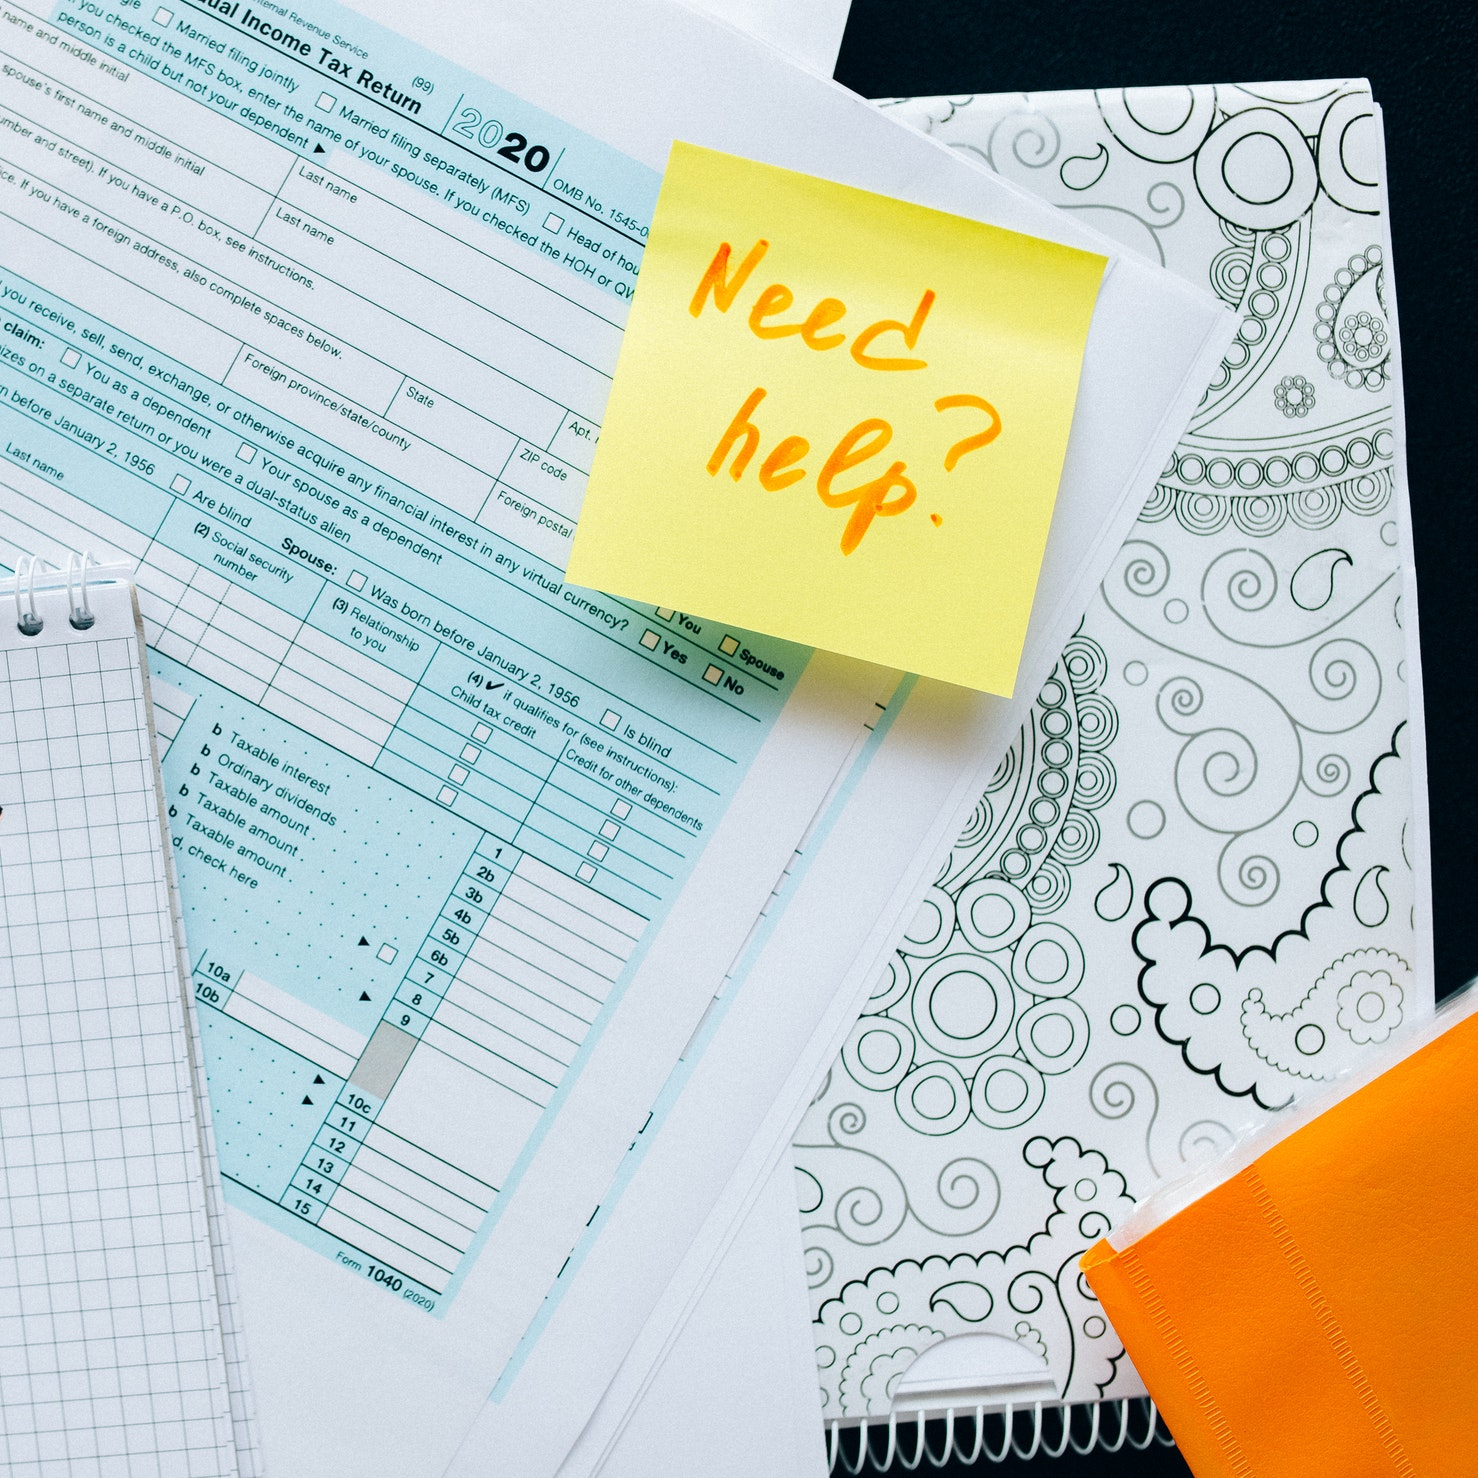 Need help with accounting?